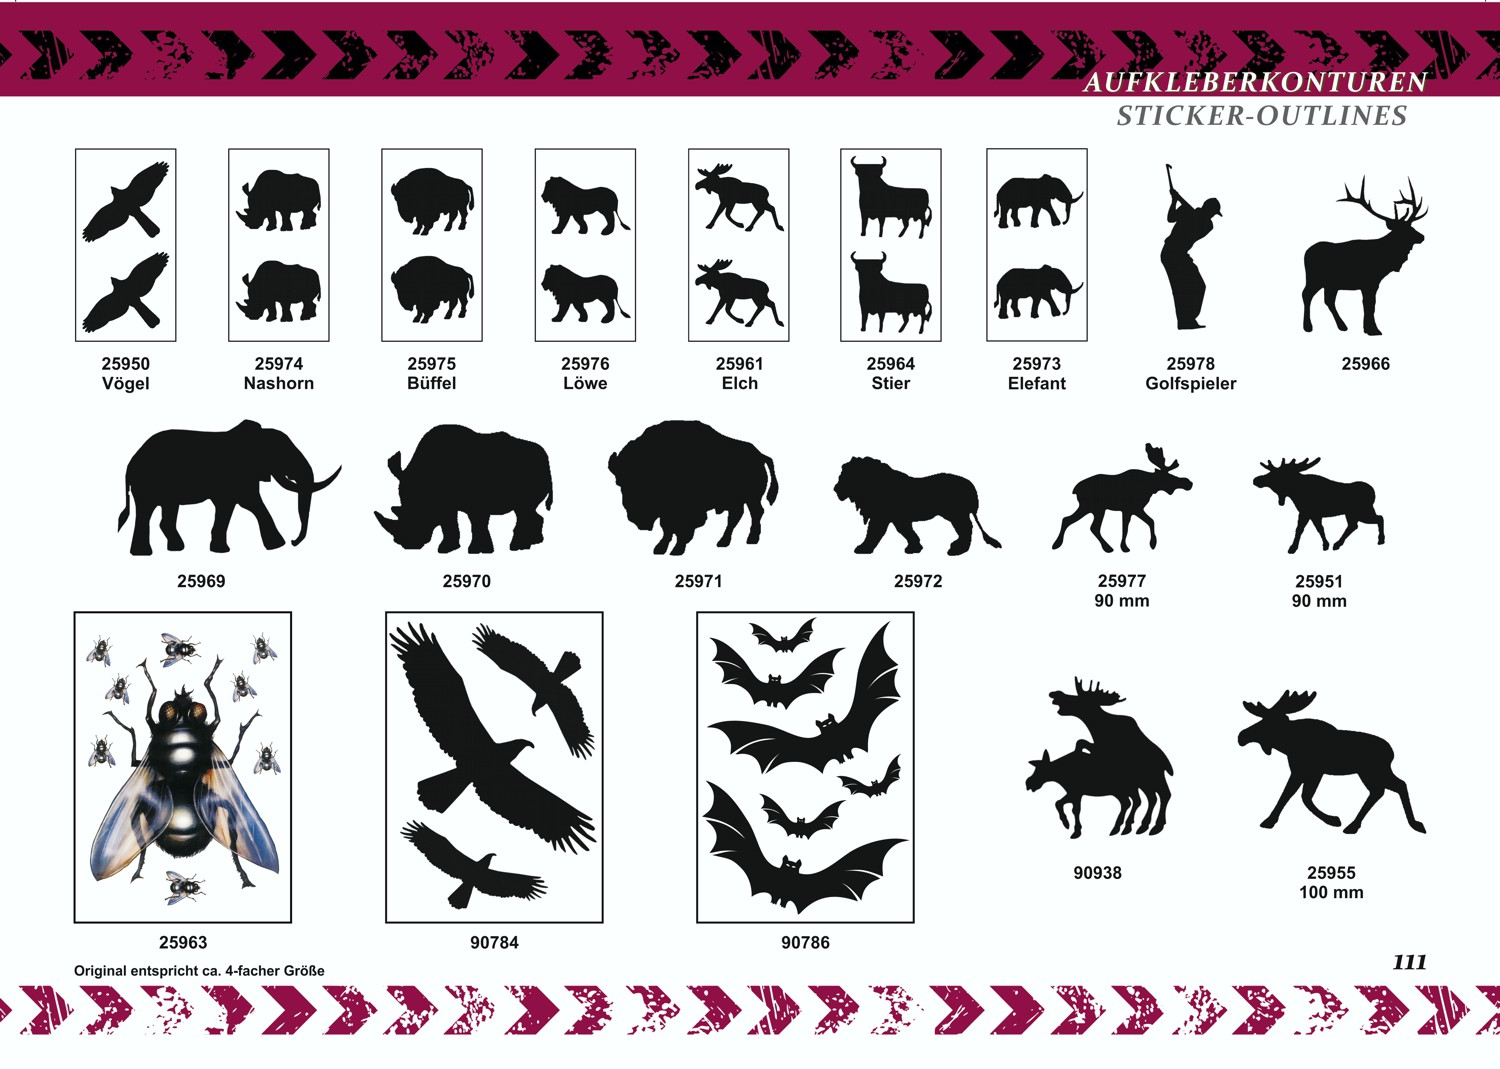 Afterglow sticker moose set of 2 – Bild 3